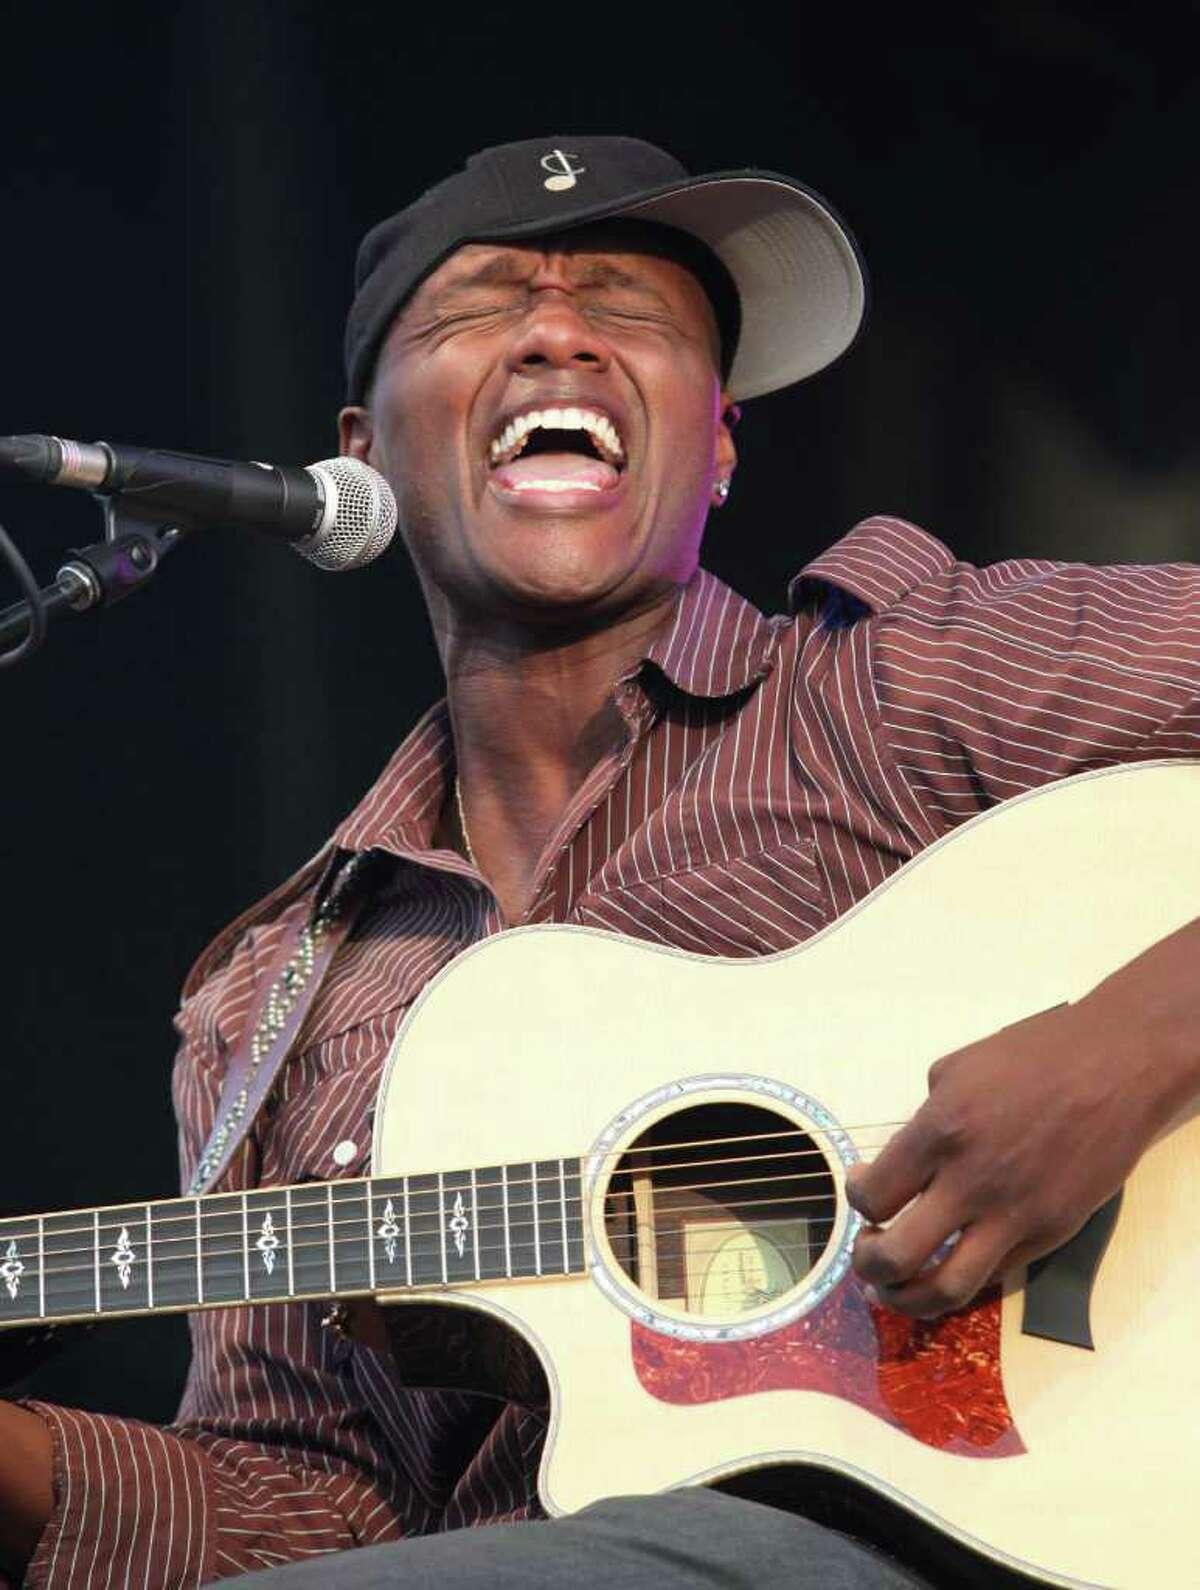 """Javier Colon, winner of the NBC reality talent show """"The Voice,"""" performs at the Cisco Ottawa Bluesfest on Tuesday, July 5, 2011. Colon will appear before fans at a homecoming celebration at his alma mater, Bunnell High School in Stratford, Conn. on Sunday July 10. (The Canadian Press Images PHOTO/Ottawa Bluesfest/Patrick Doyle via AP Images)"""